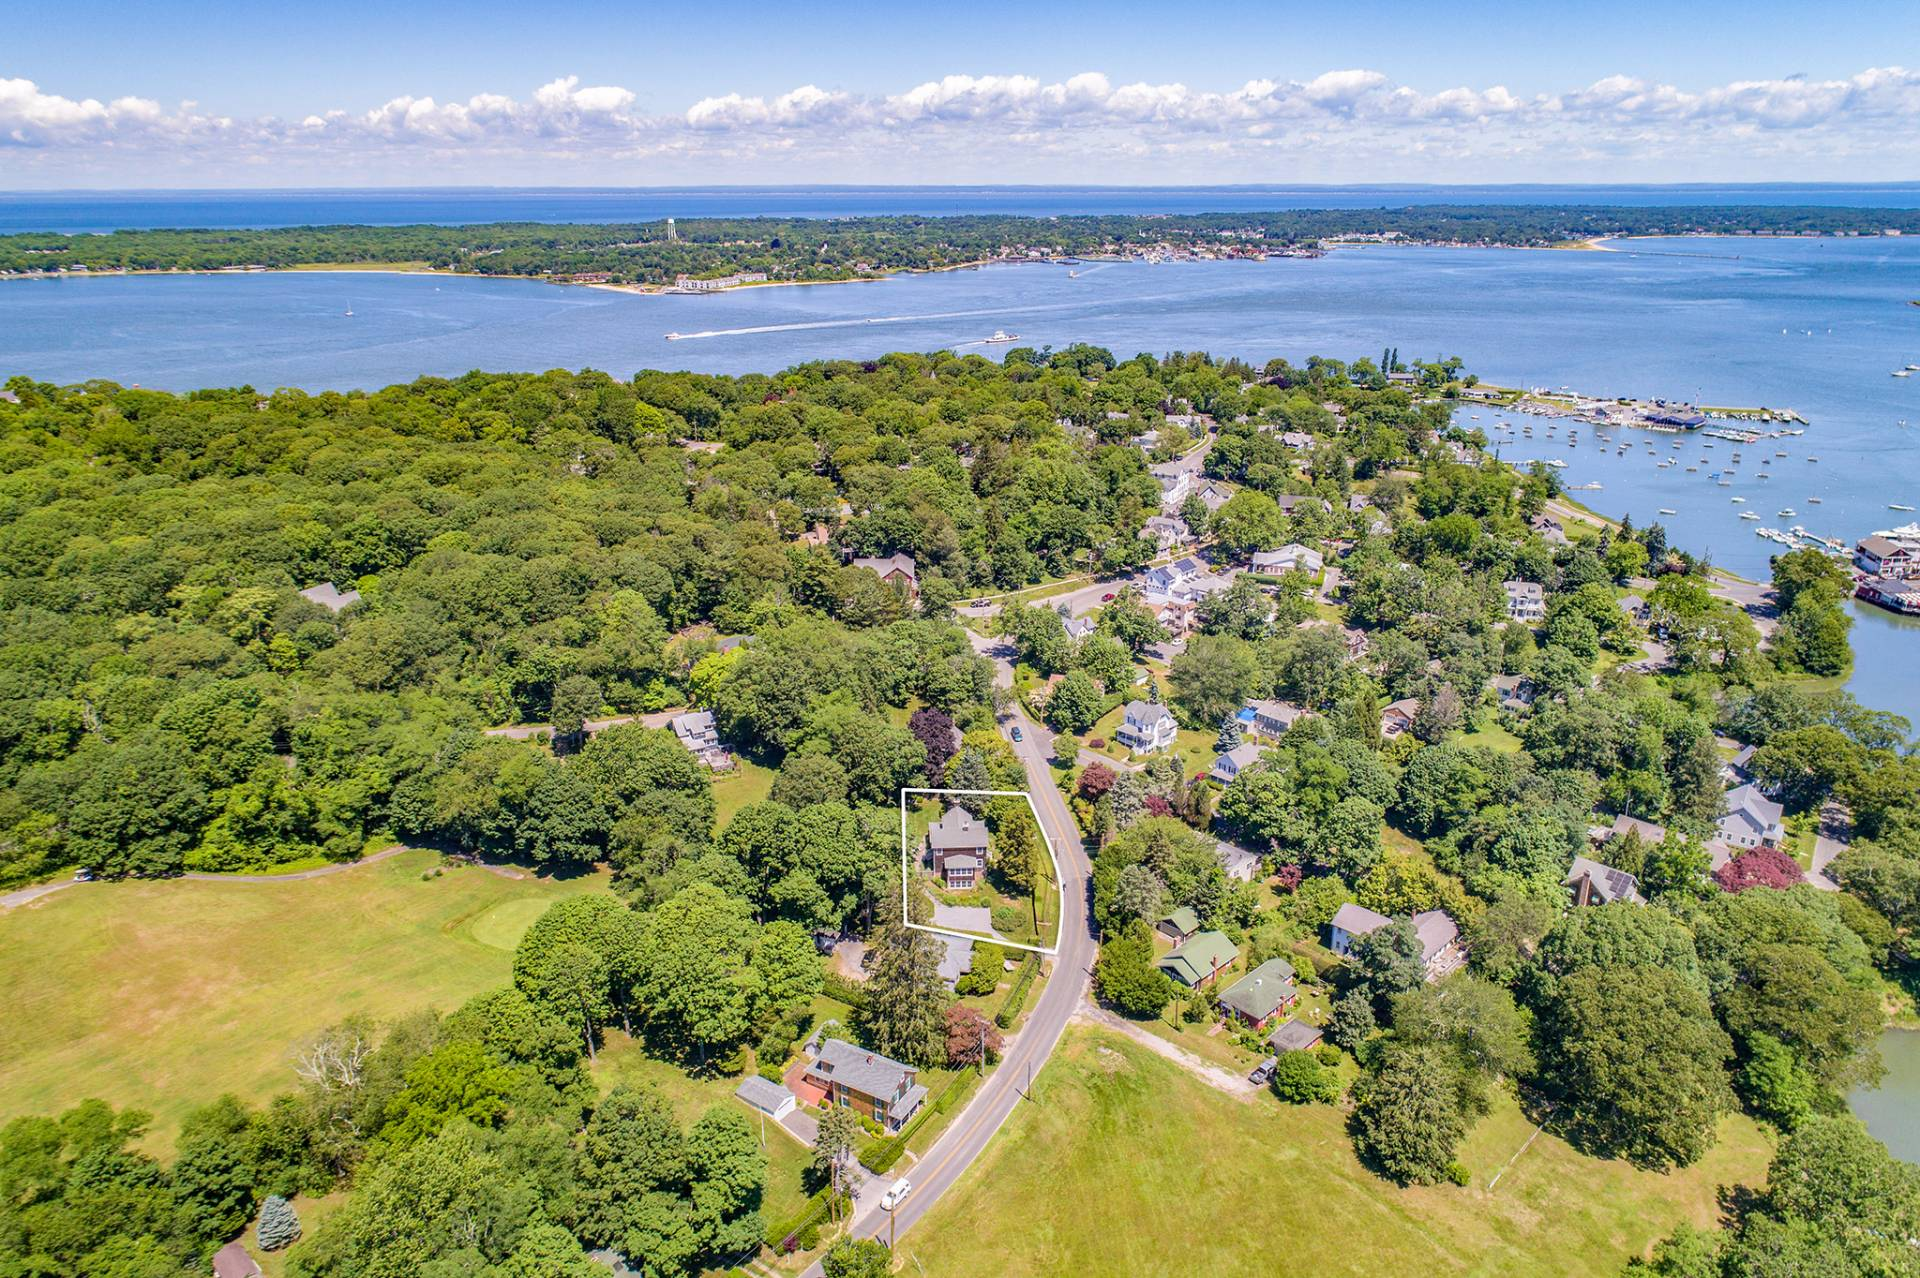 shelter island heights singles Find great camping in and around shelter island heights, new york read trusted reviews of shelter island heights rv parks & campgrounds from campers just like you.